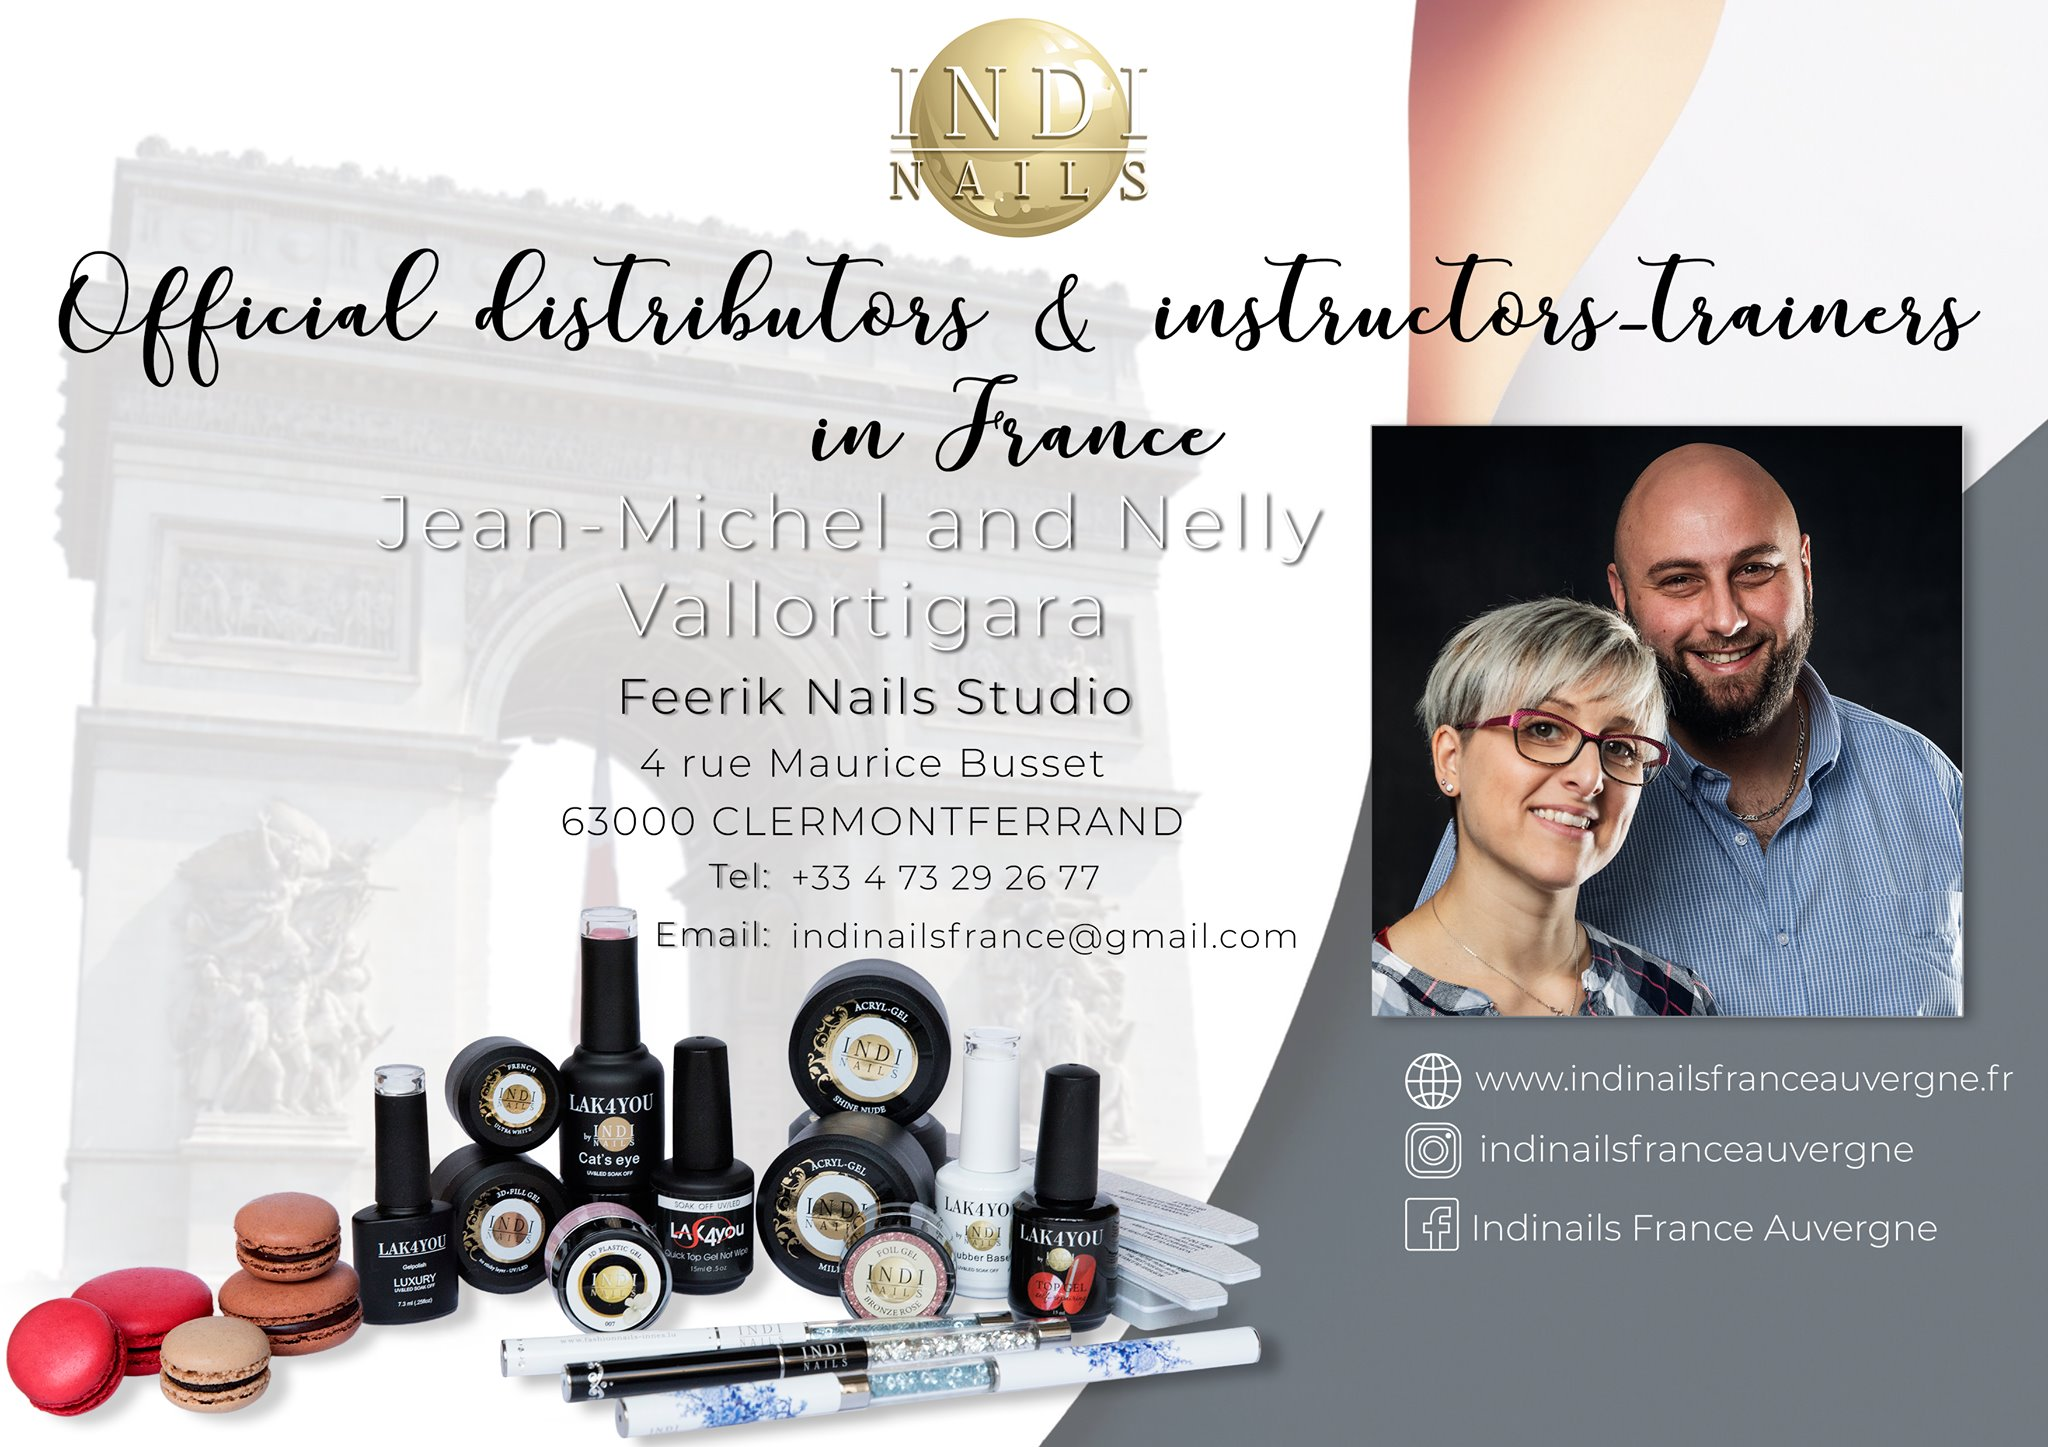 formateur & distributeur indi nails france